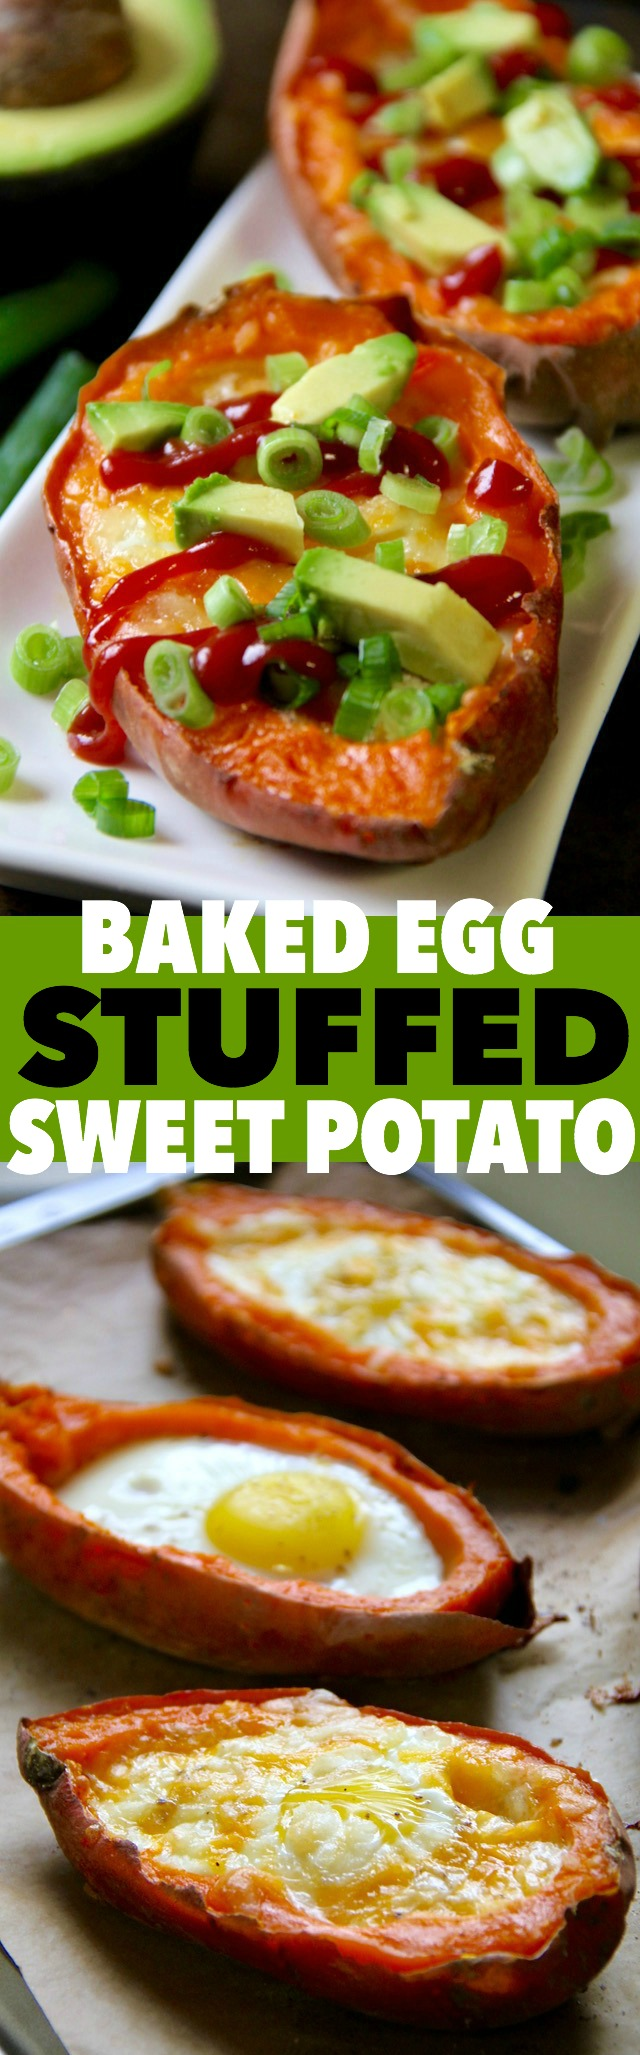 Baked-Egg-Stuffed-Sweet-Potatoes5